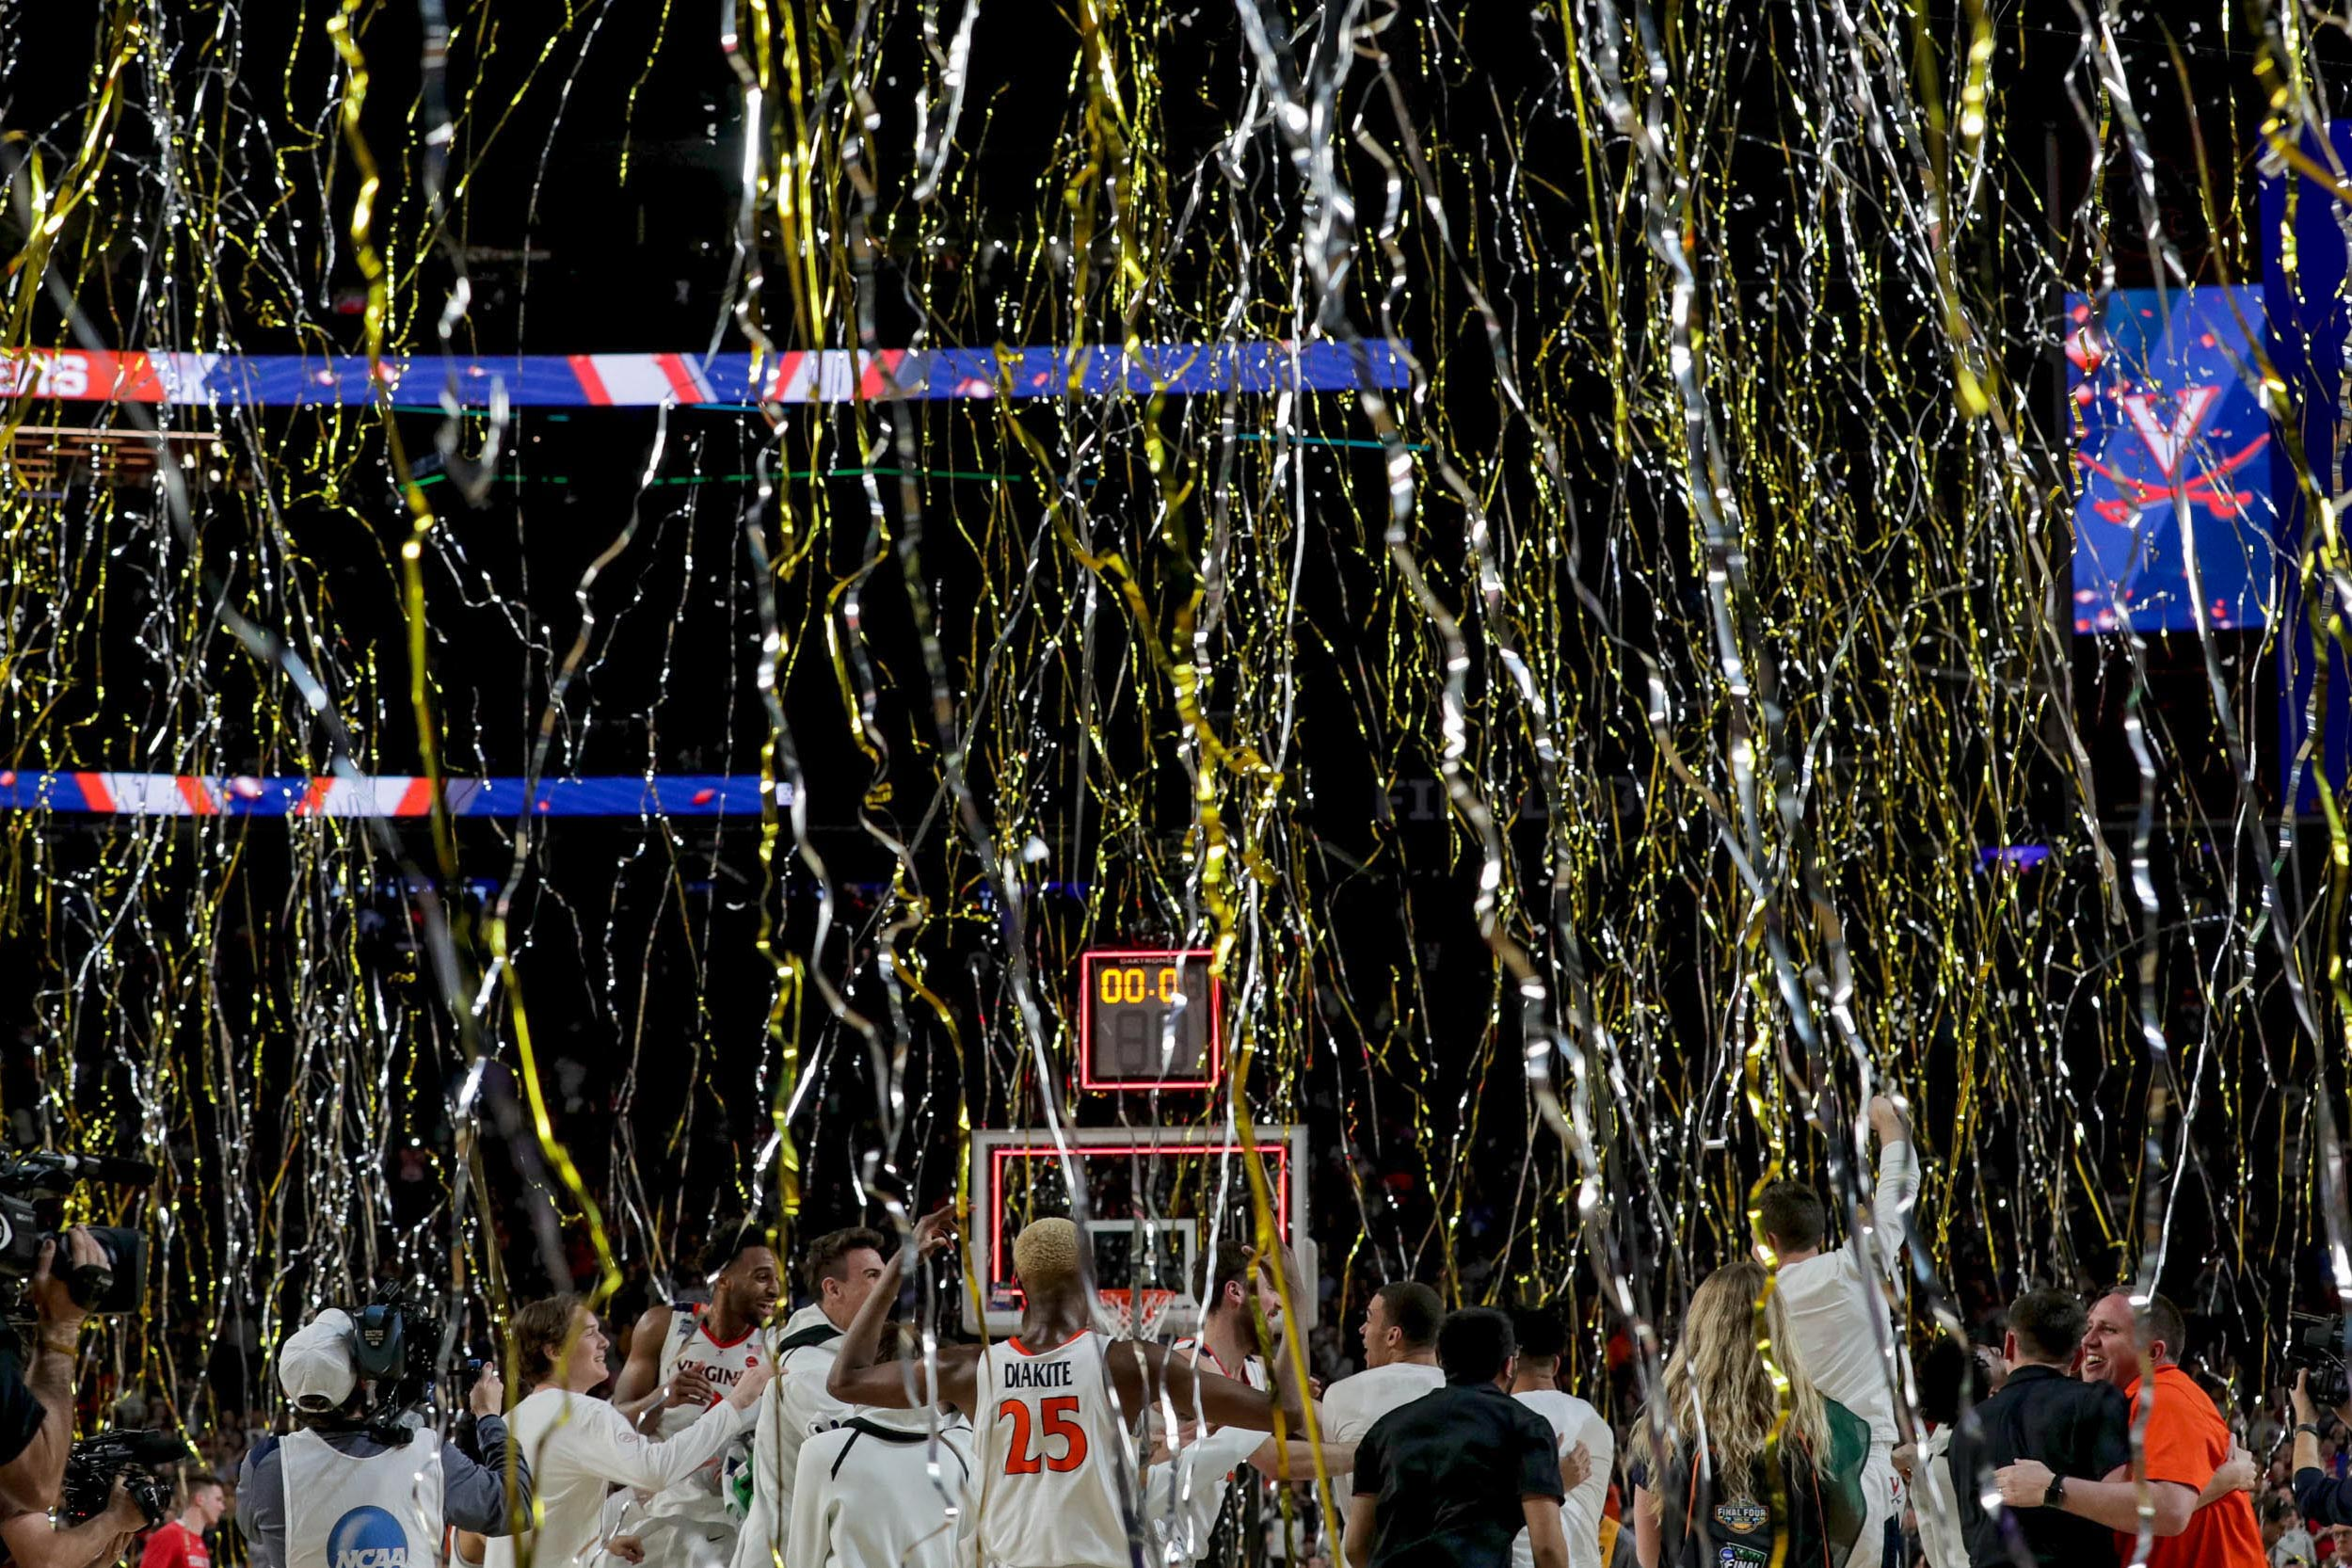 The celebration of UVA's first national men's basketball championship will continue Sept. 13 with a ring presentation and banner raising.